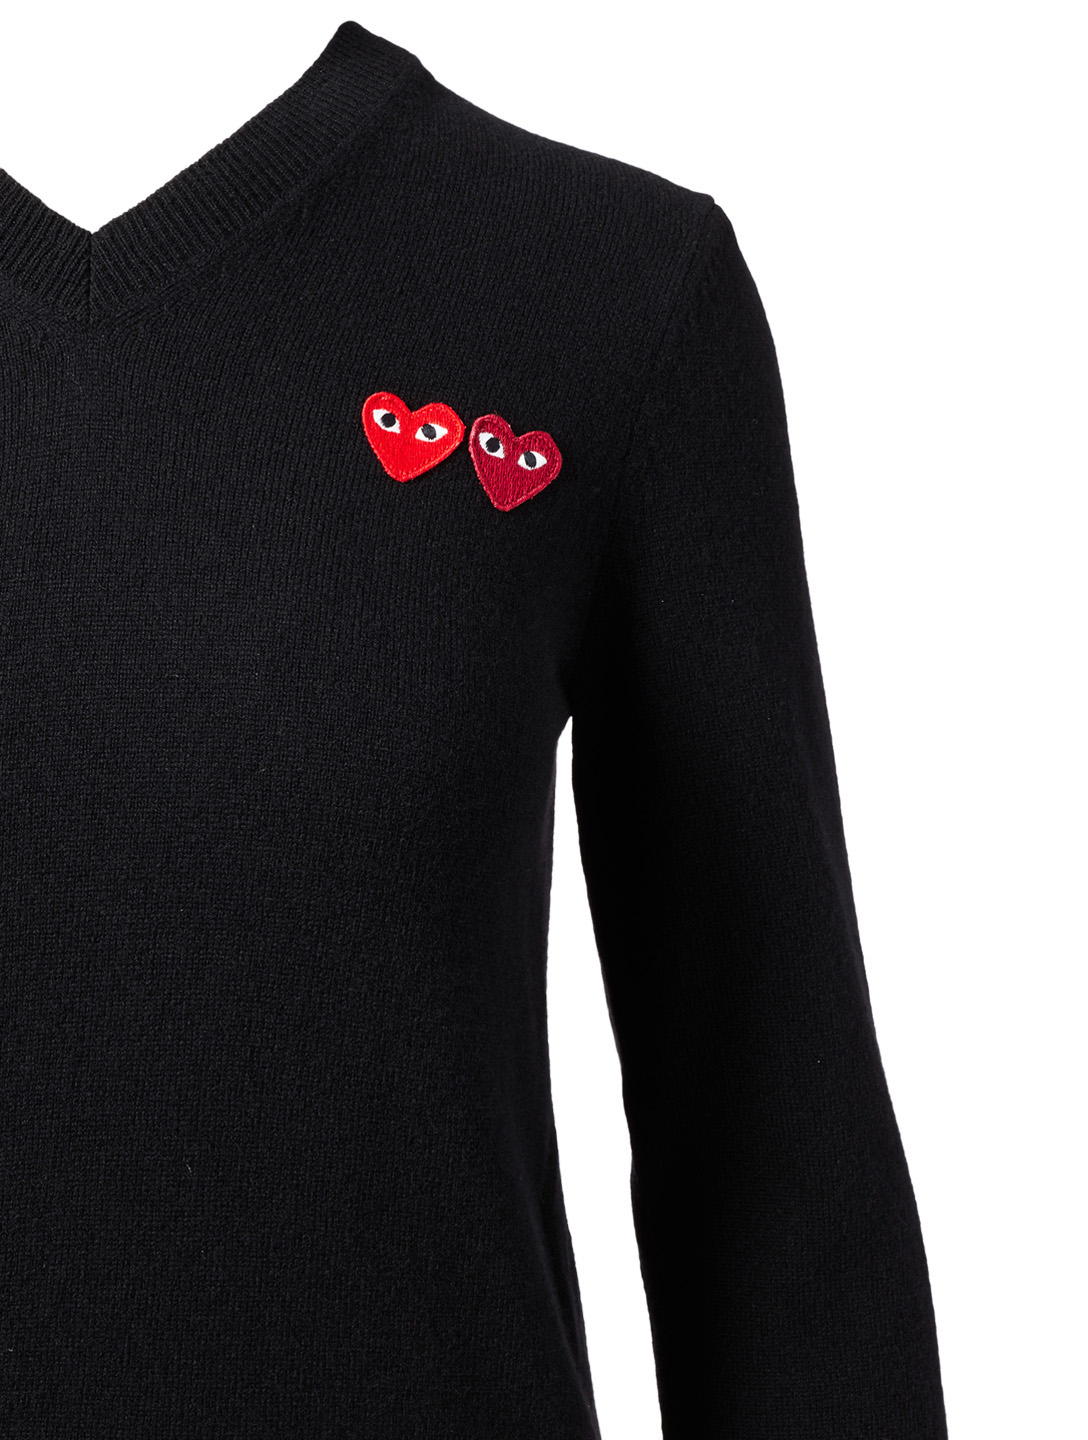 COMME DES GARÇONS PLAY Wool Double Heart V-Neck Sweater Designers Black